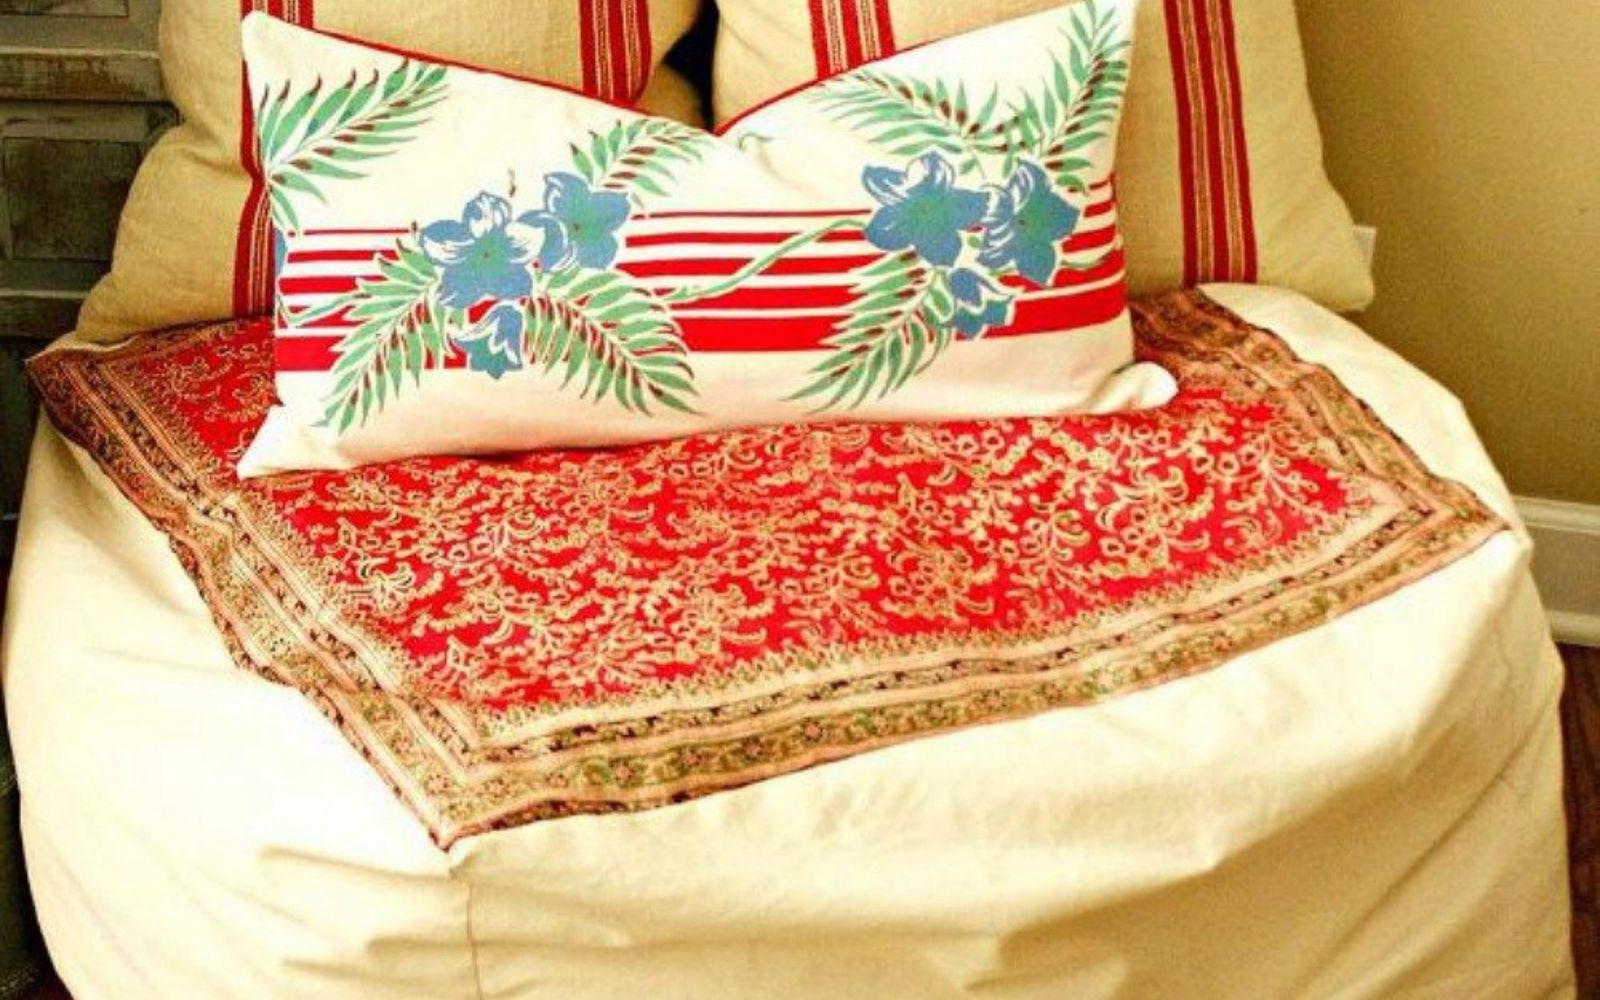 s 12 gorgeous ottoman ideas that will make you want to put your feet up, painted furniture, Double the ottoman as a seat